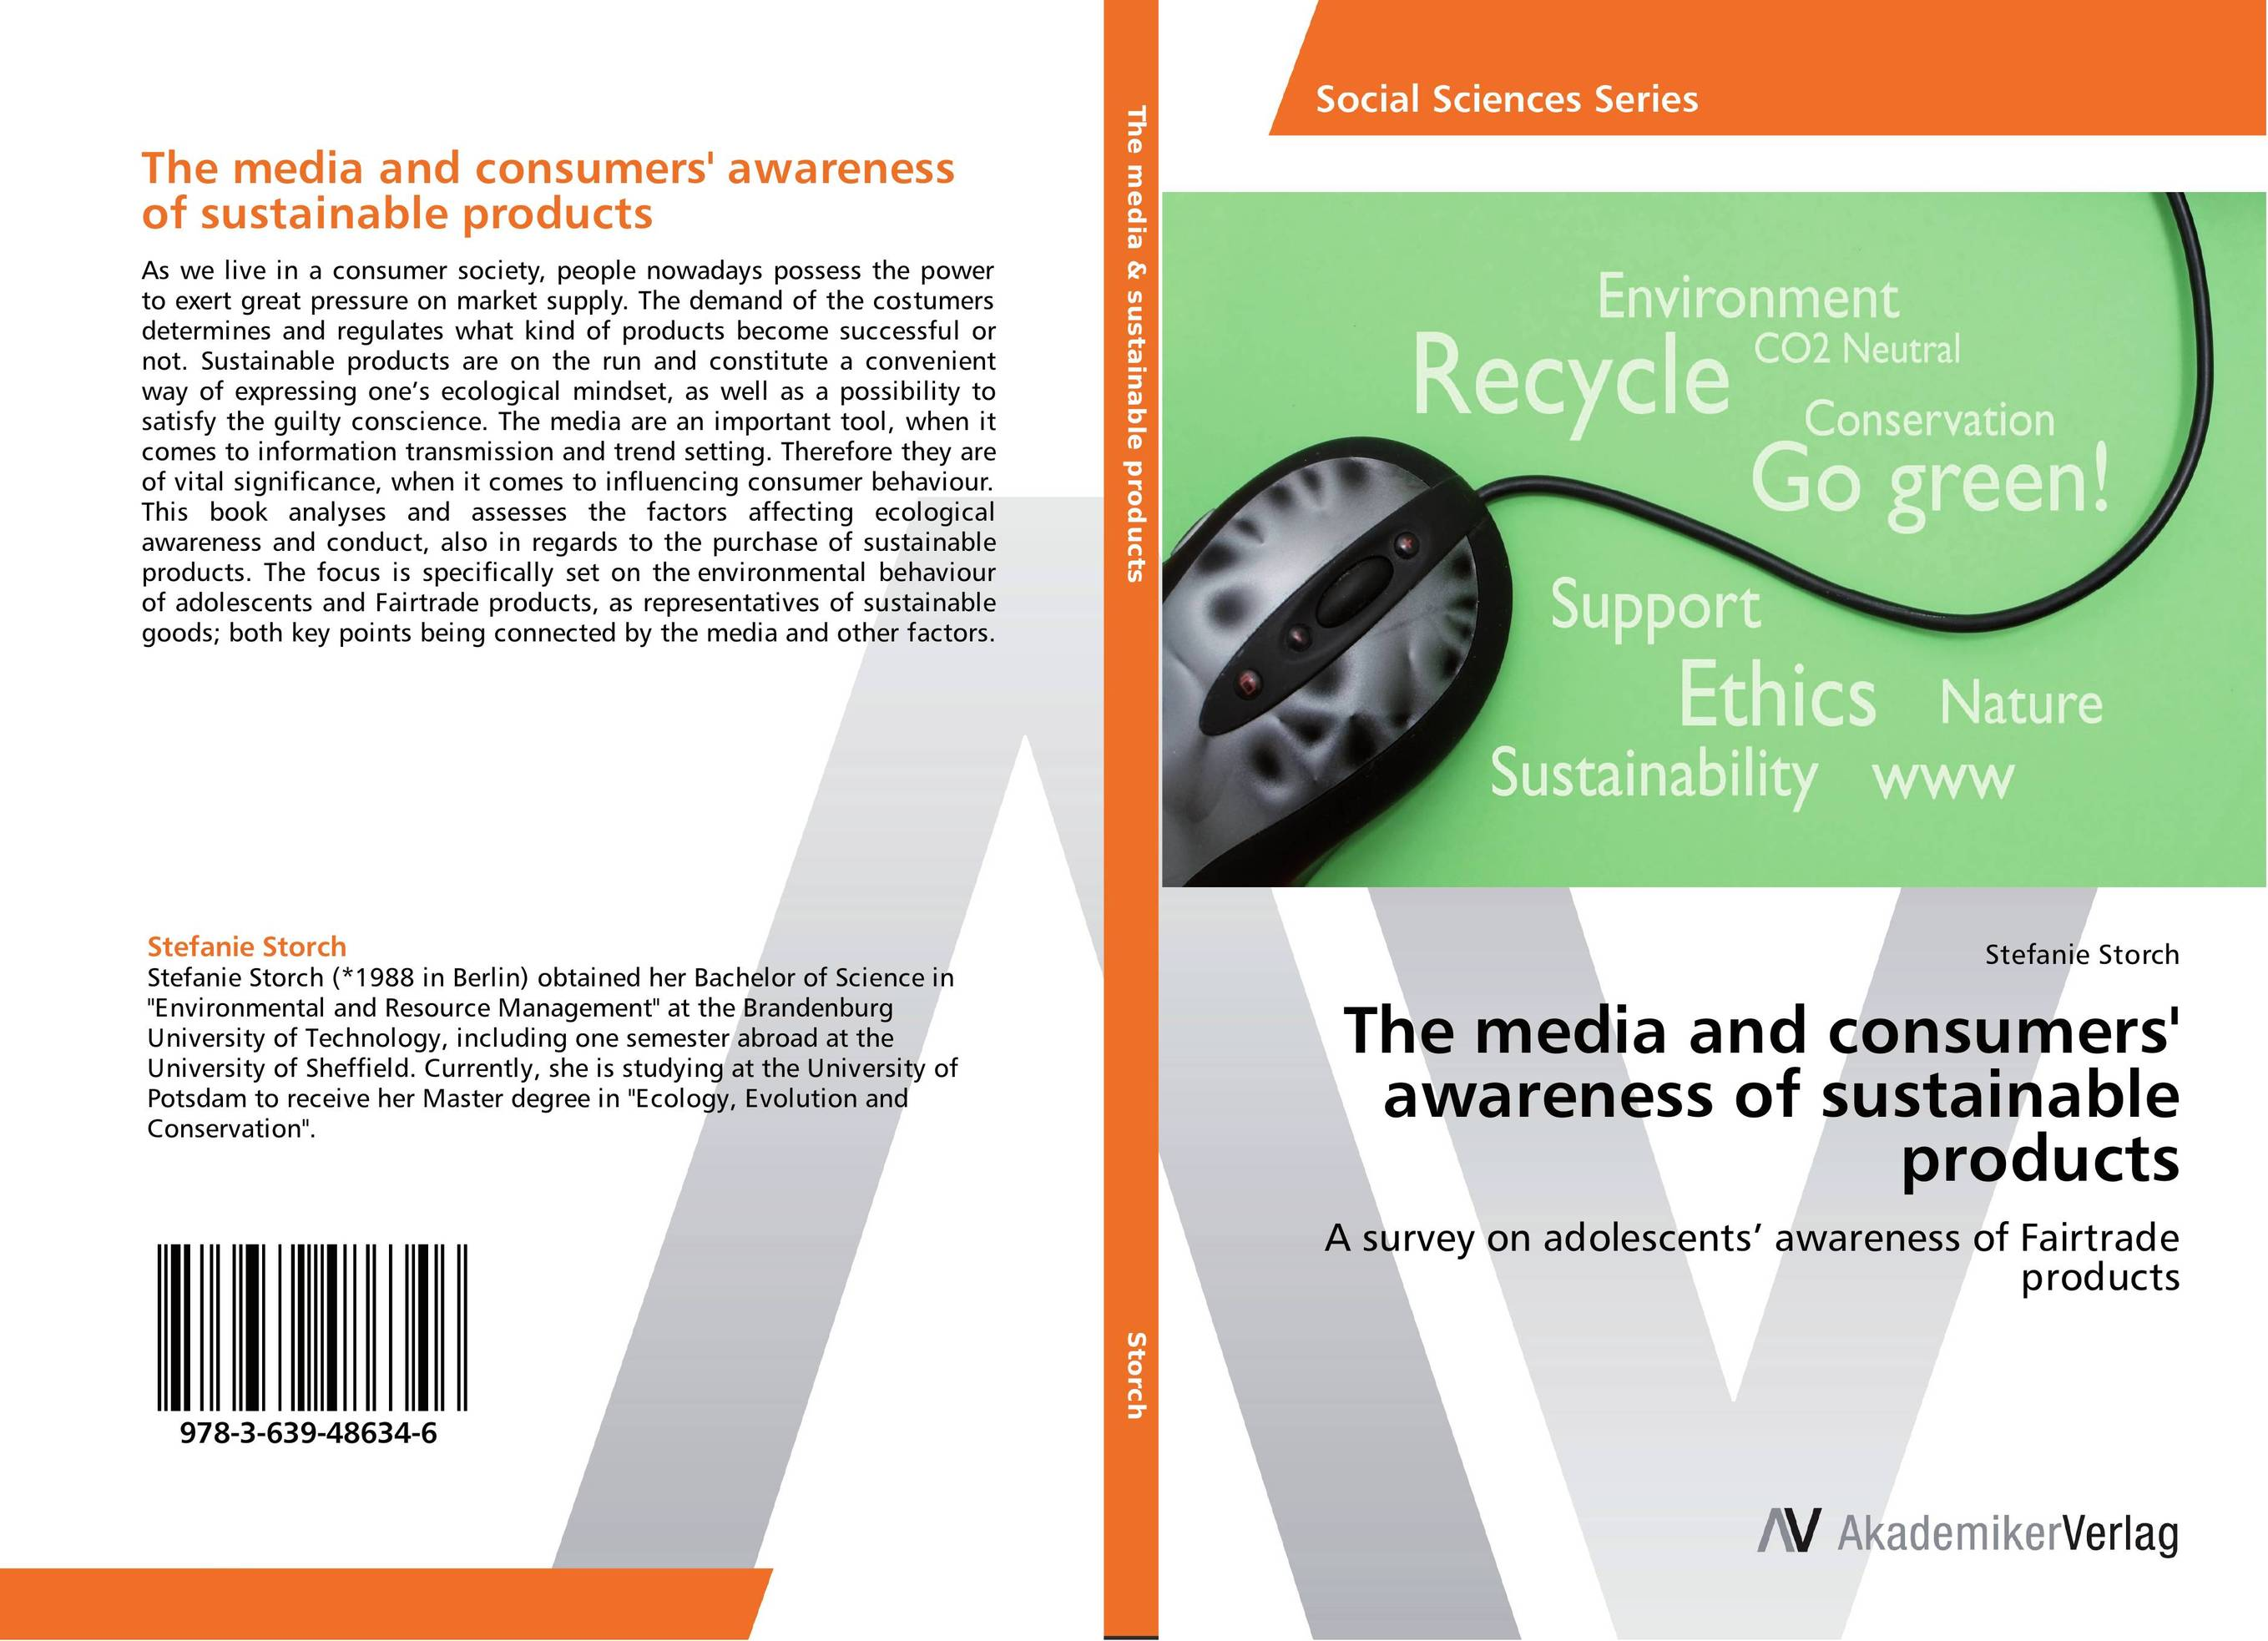 The media and consumers' awareness of sustainable products